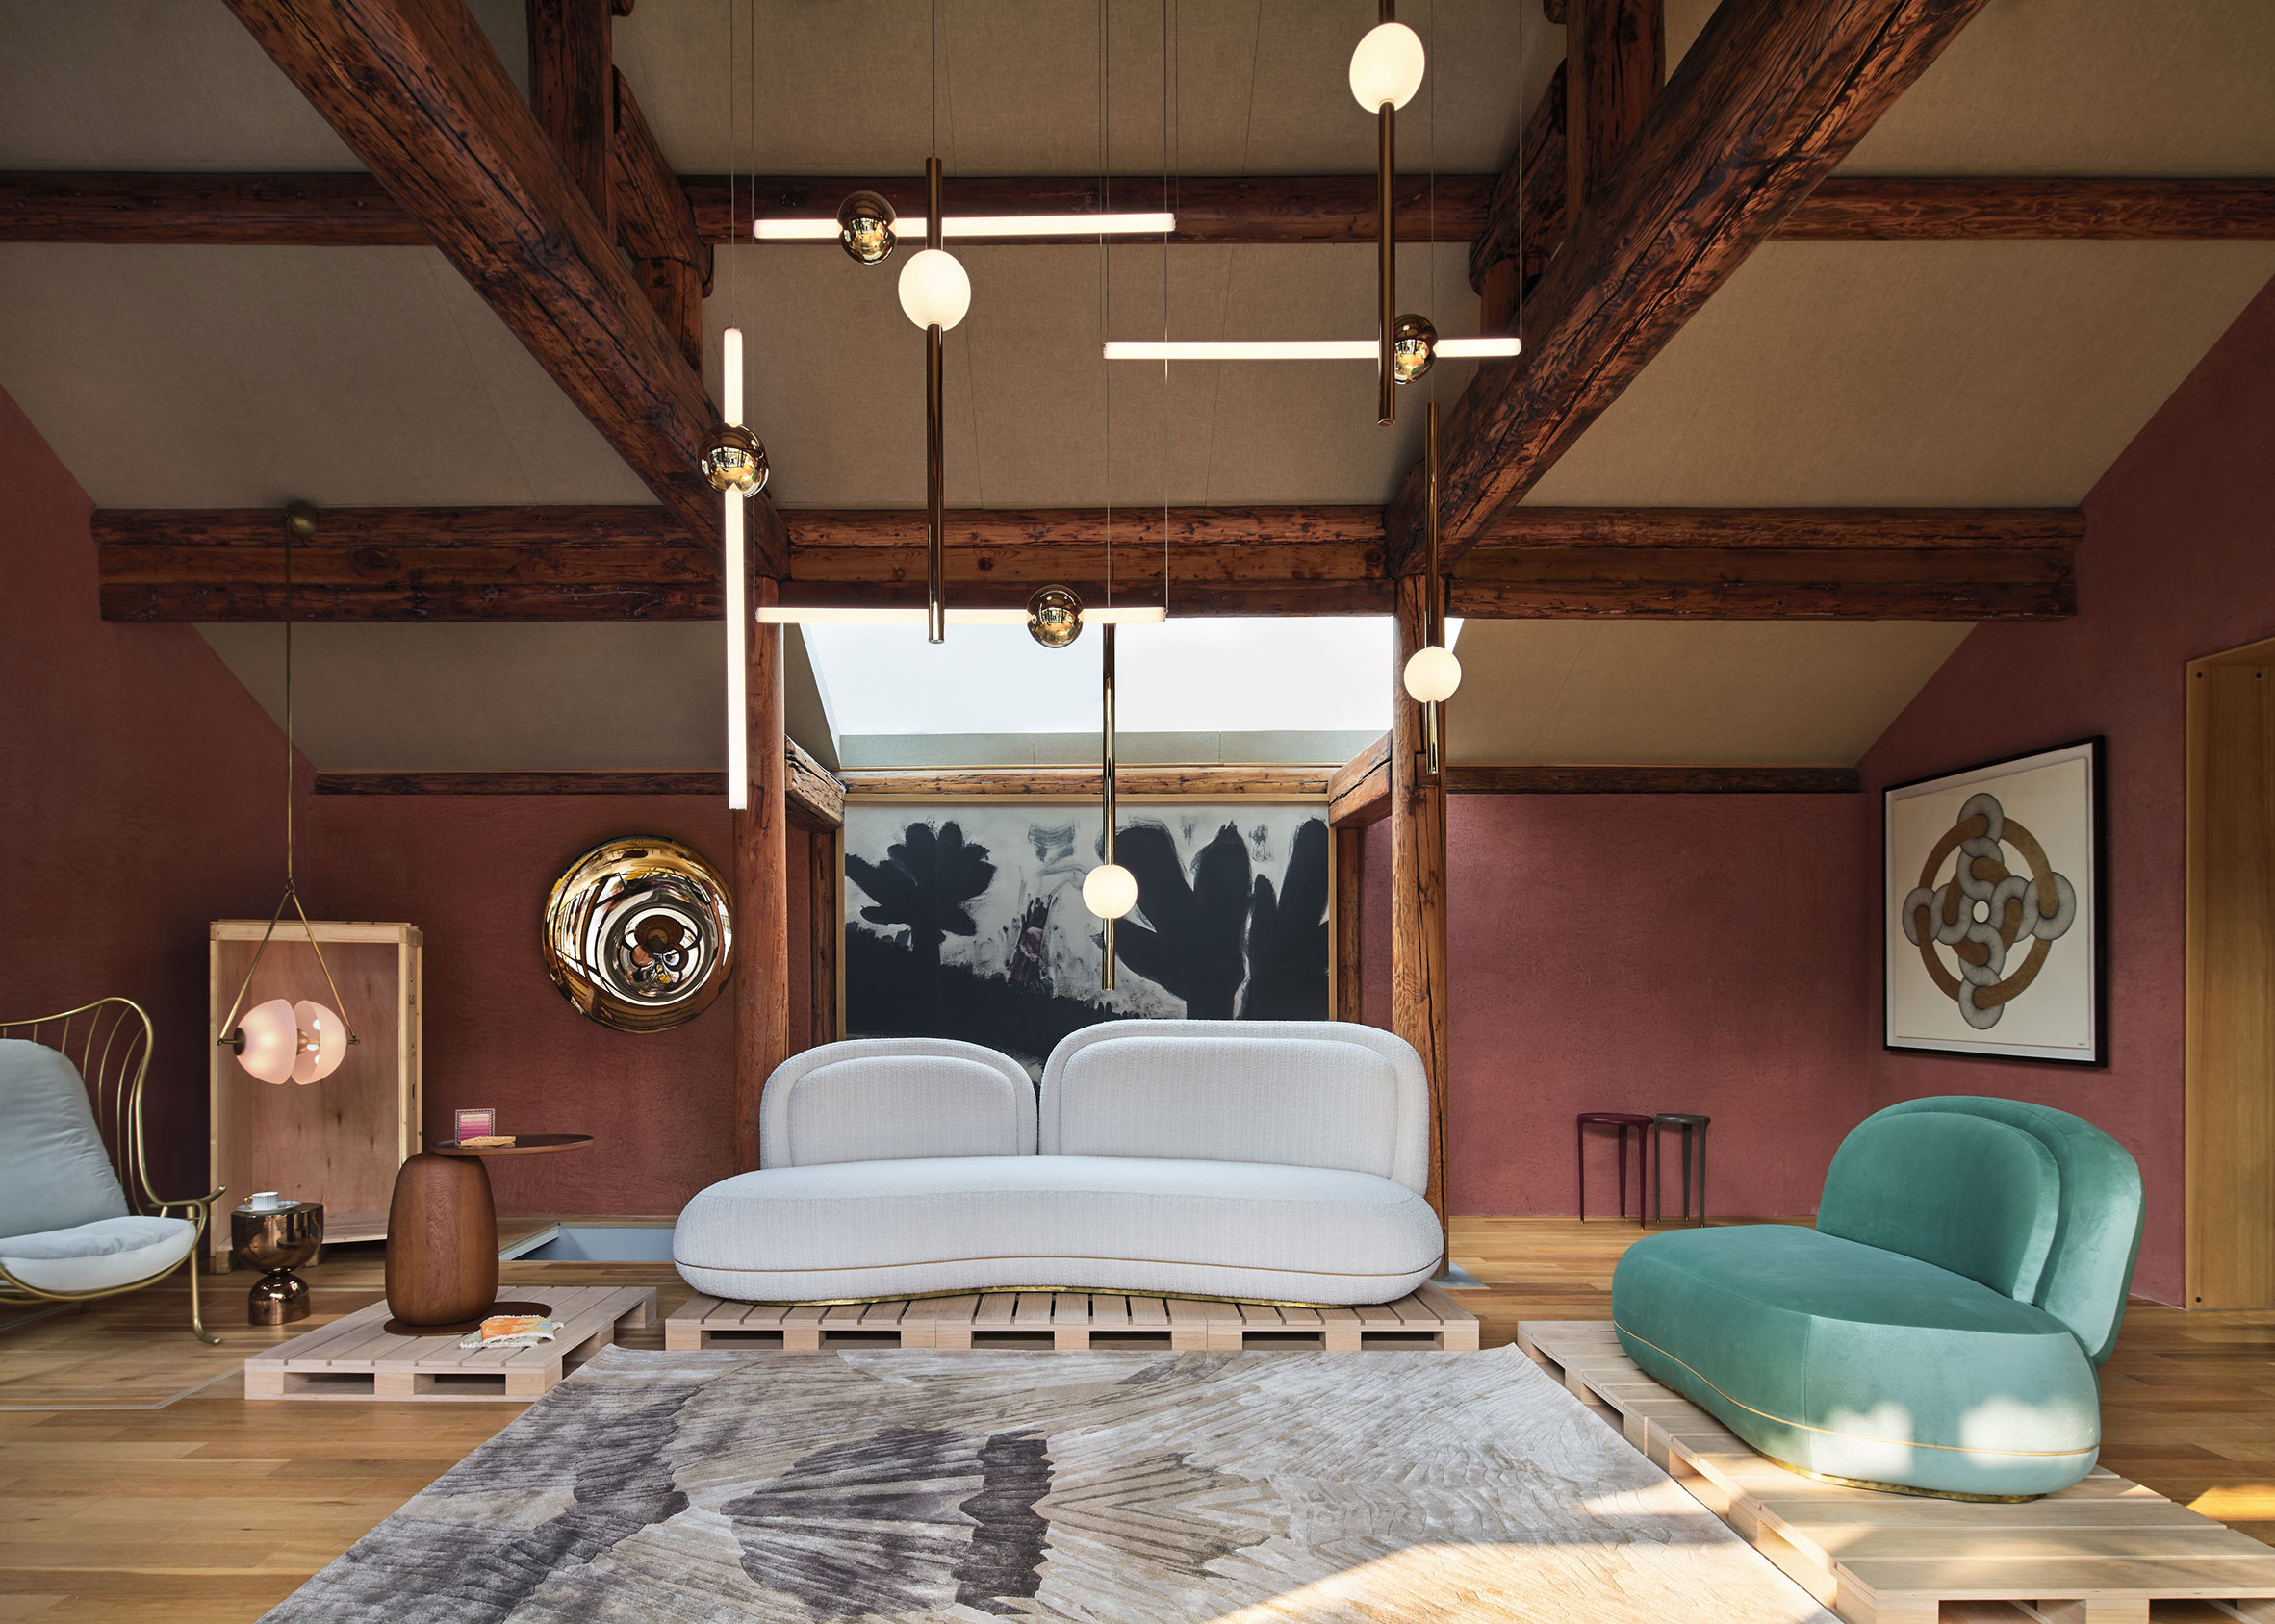 House of Wang furniture at Design Shanghai 2020